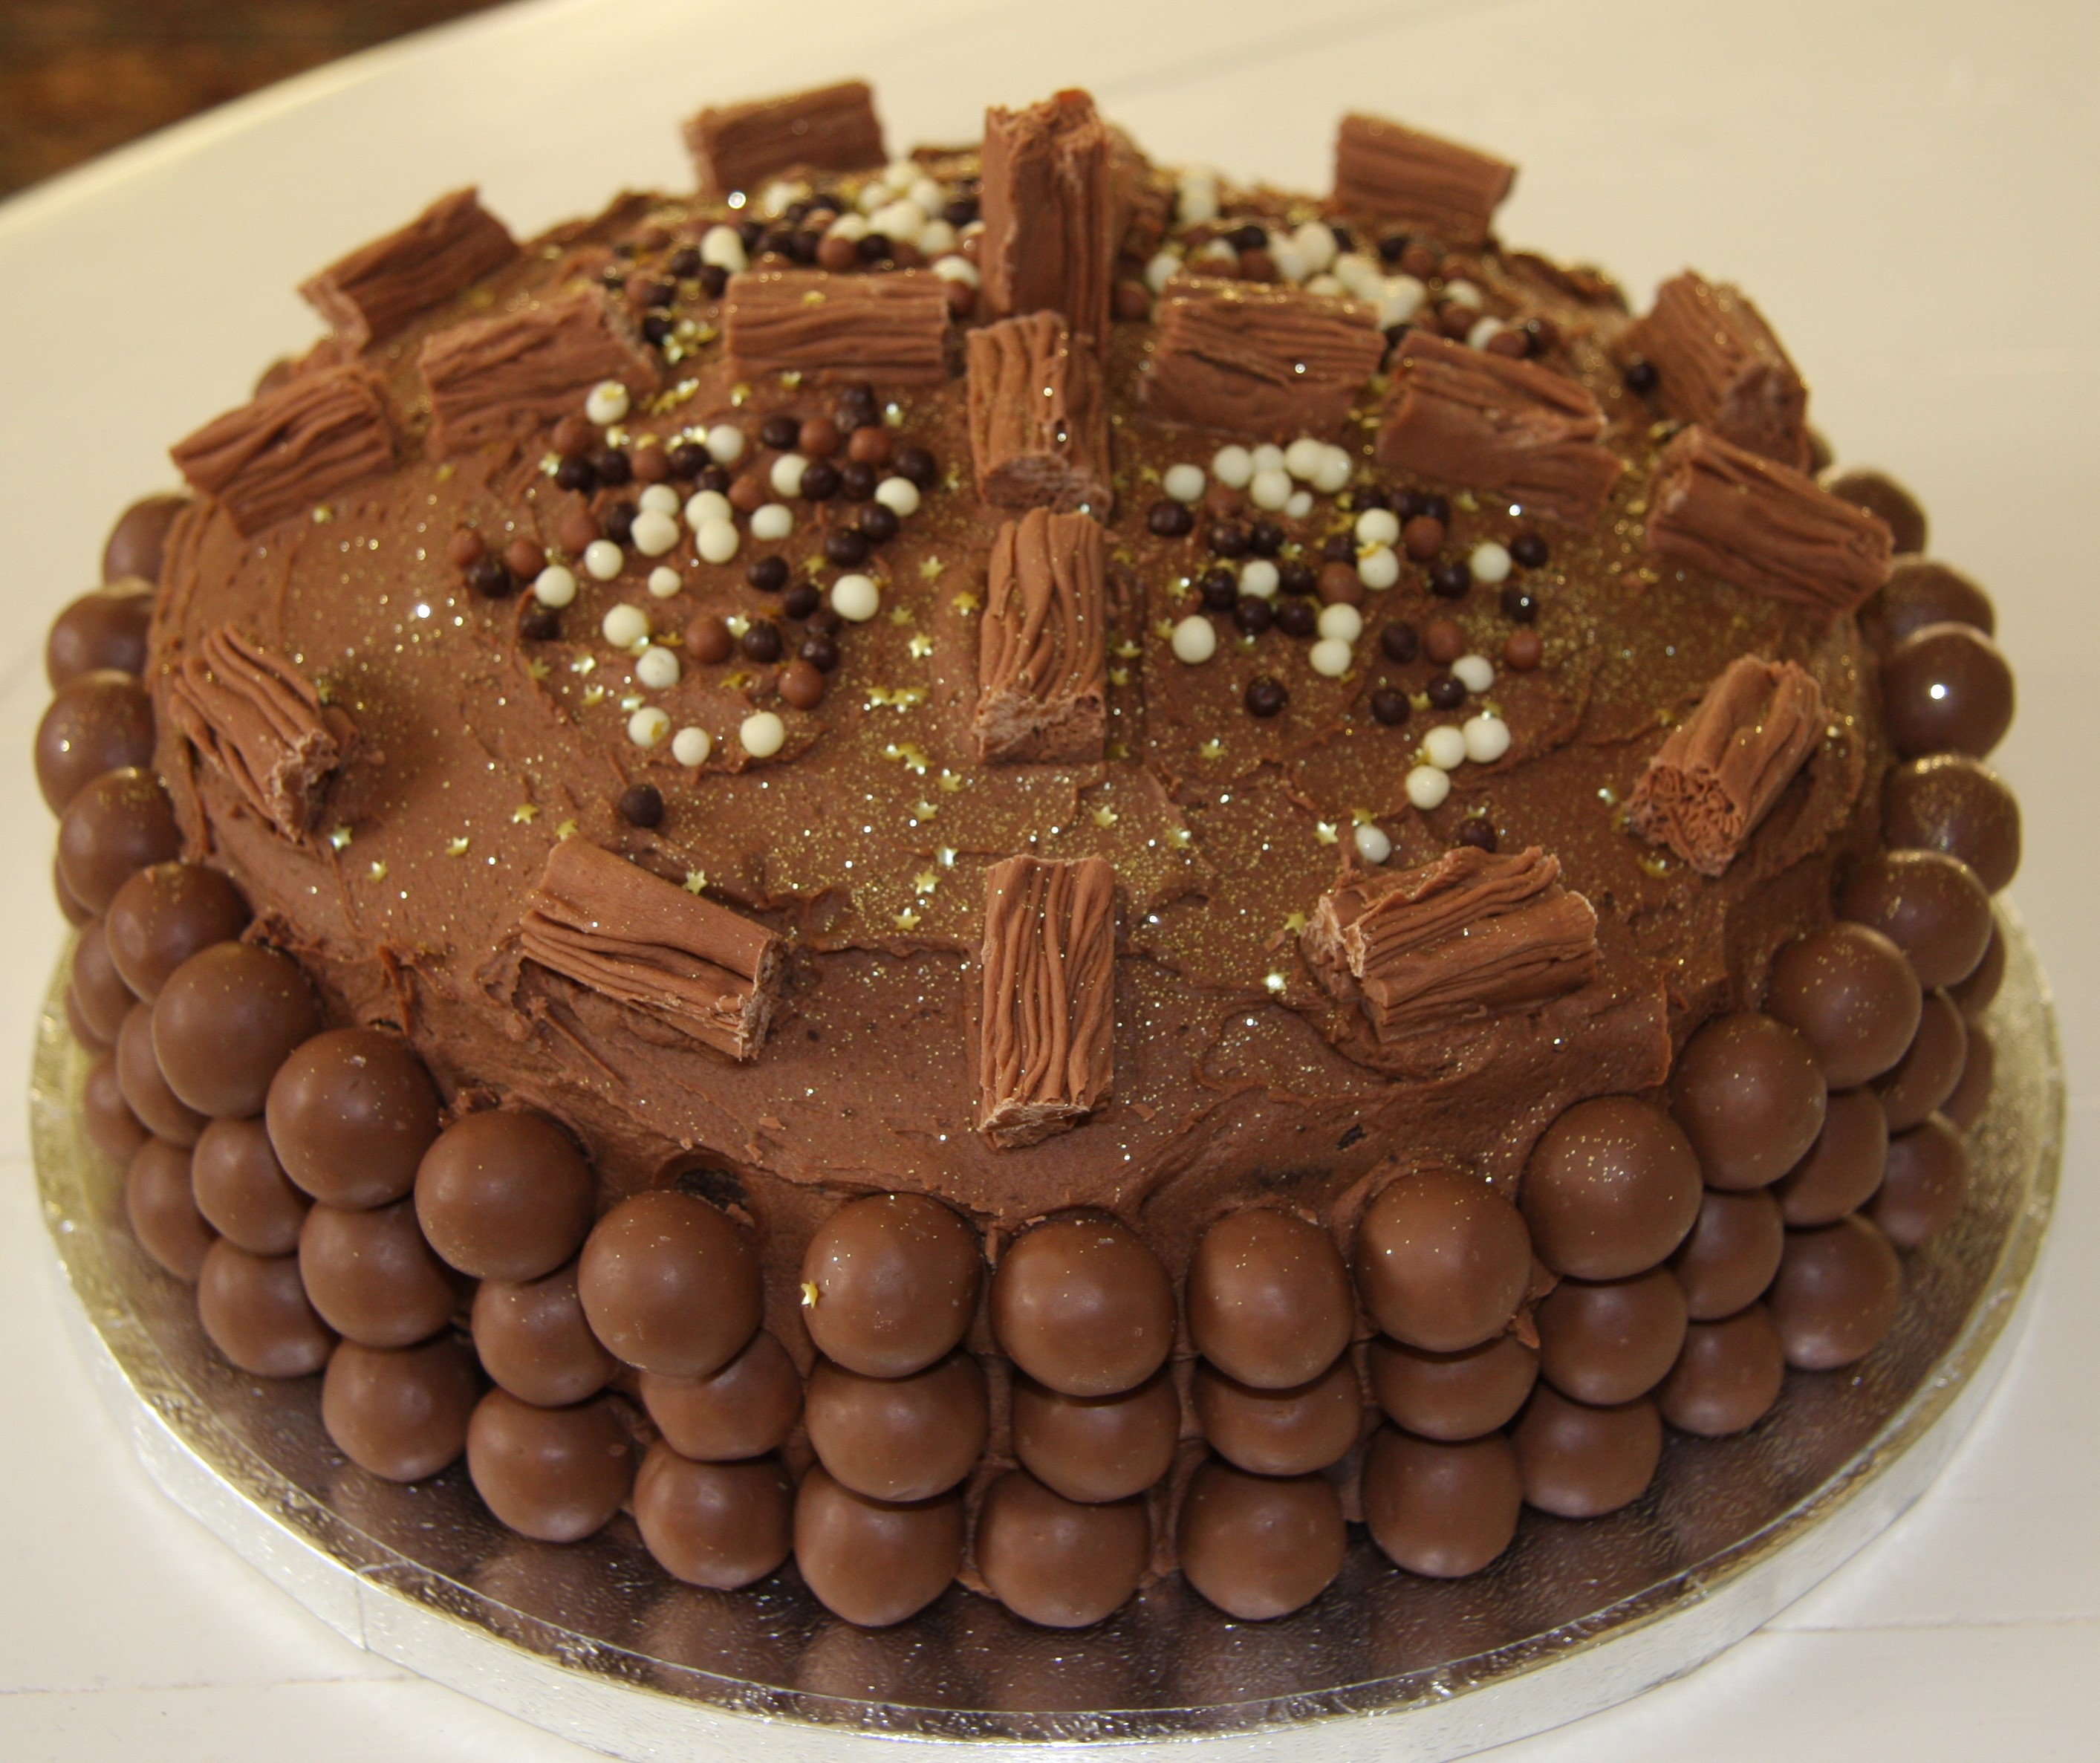 Best Chocolate Birthday Cake Chocolate Birthday Cakes Top Tips For Decorating With Maltesers